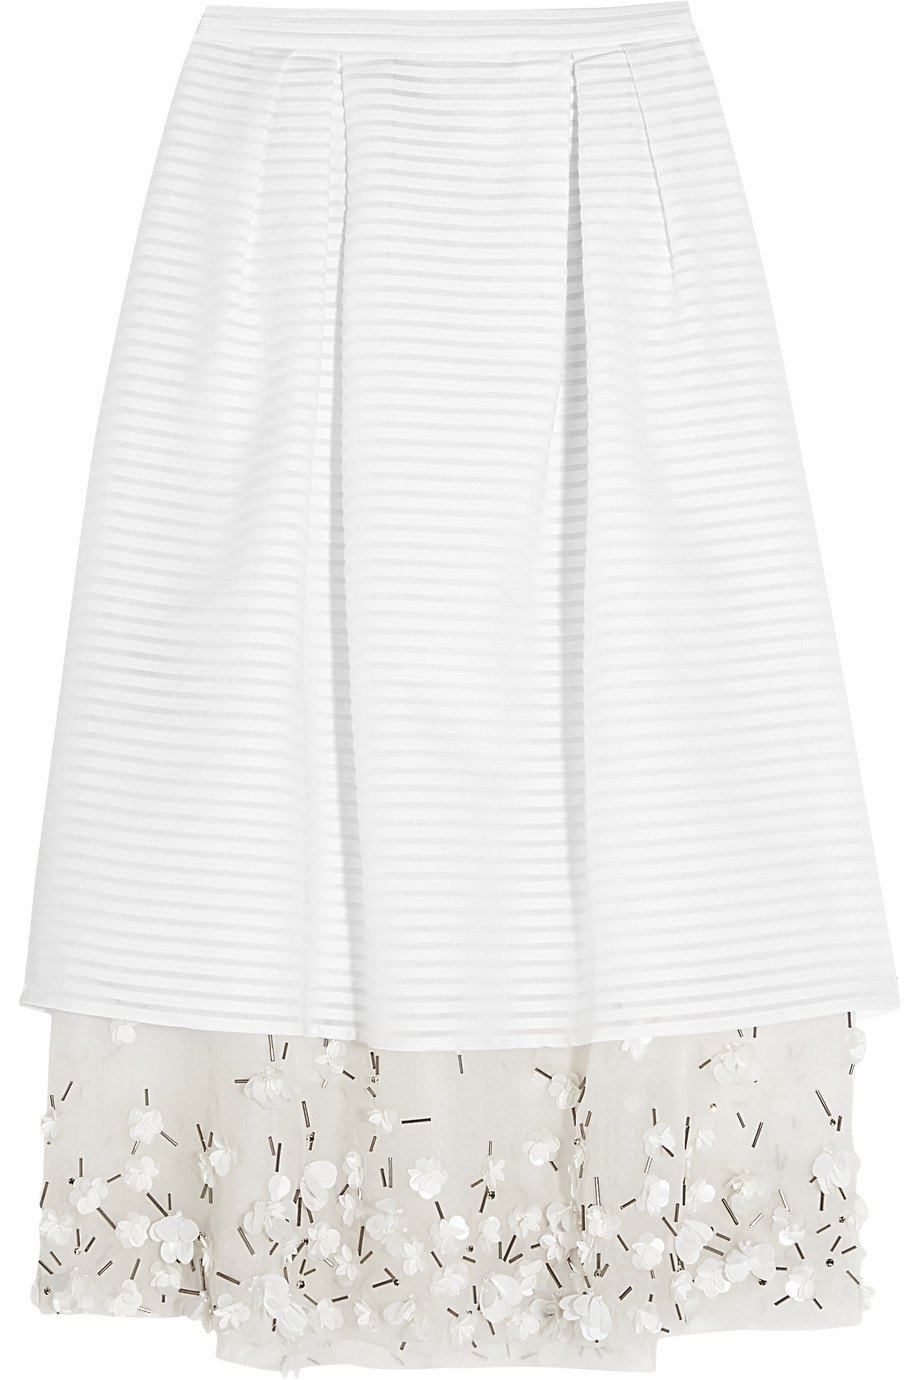 Mother of Pearl Hudson Embellished Organza-Trimmed Cotton-Blend Skirt, White, Women's, Size: 6